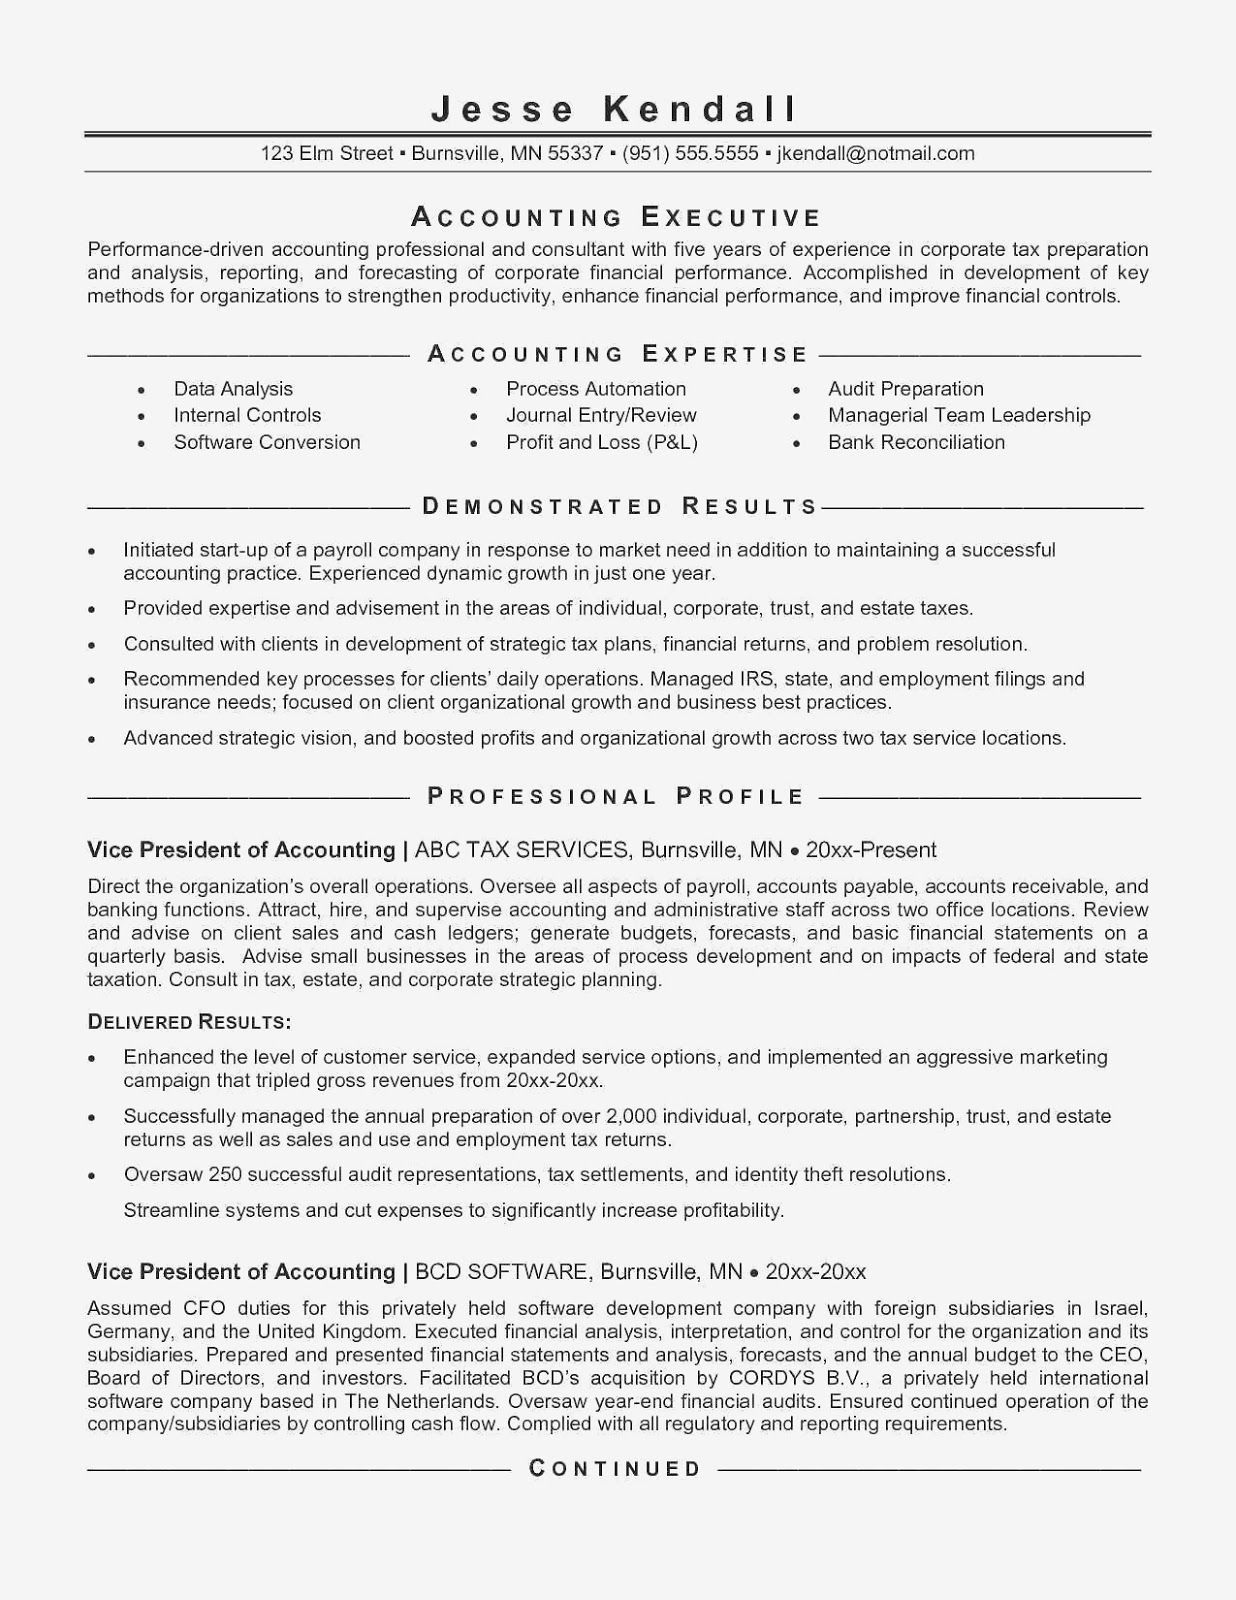 account clerk resume sample 2019 examples 2020 beste curriculum vitae format pdf free download current objective for cv teaching